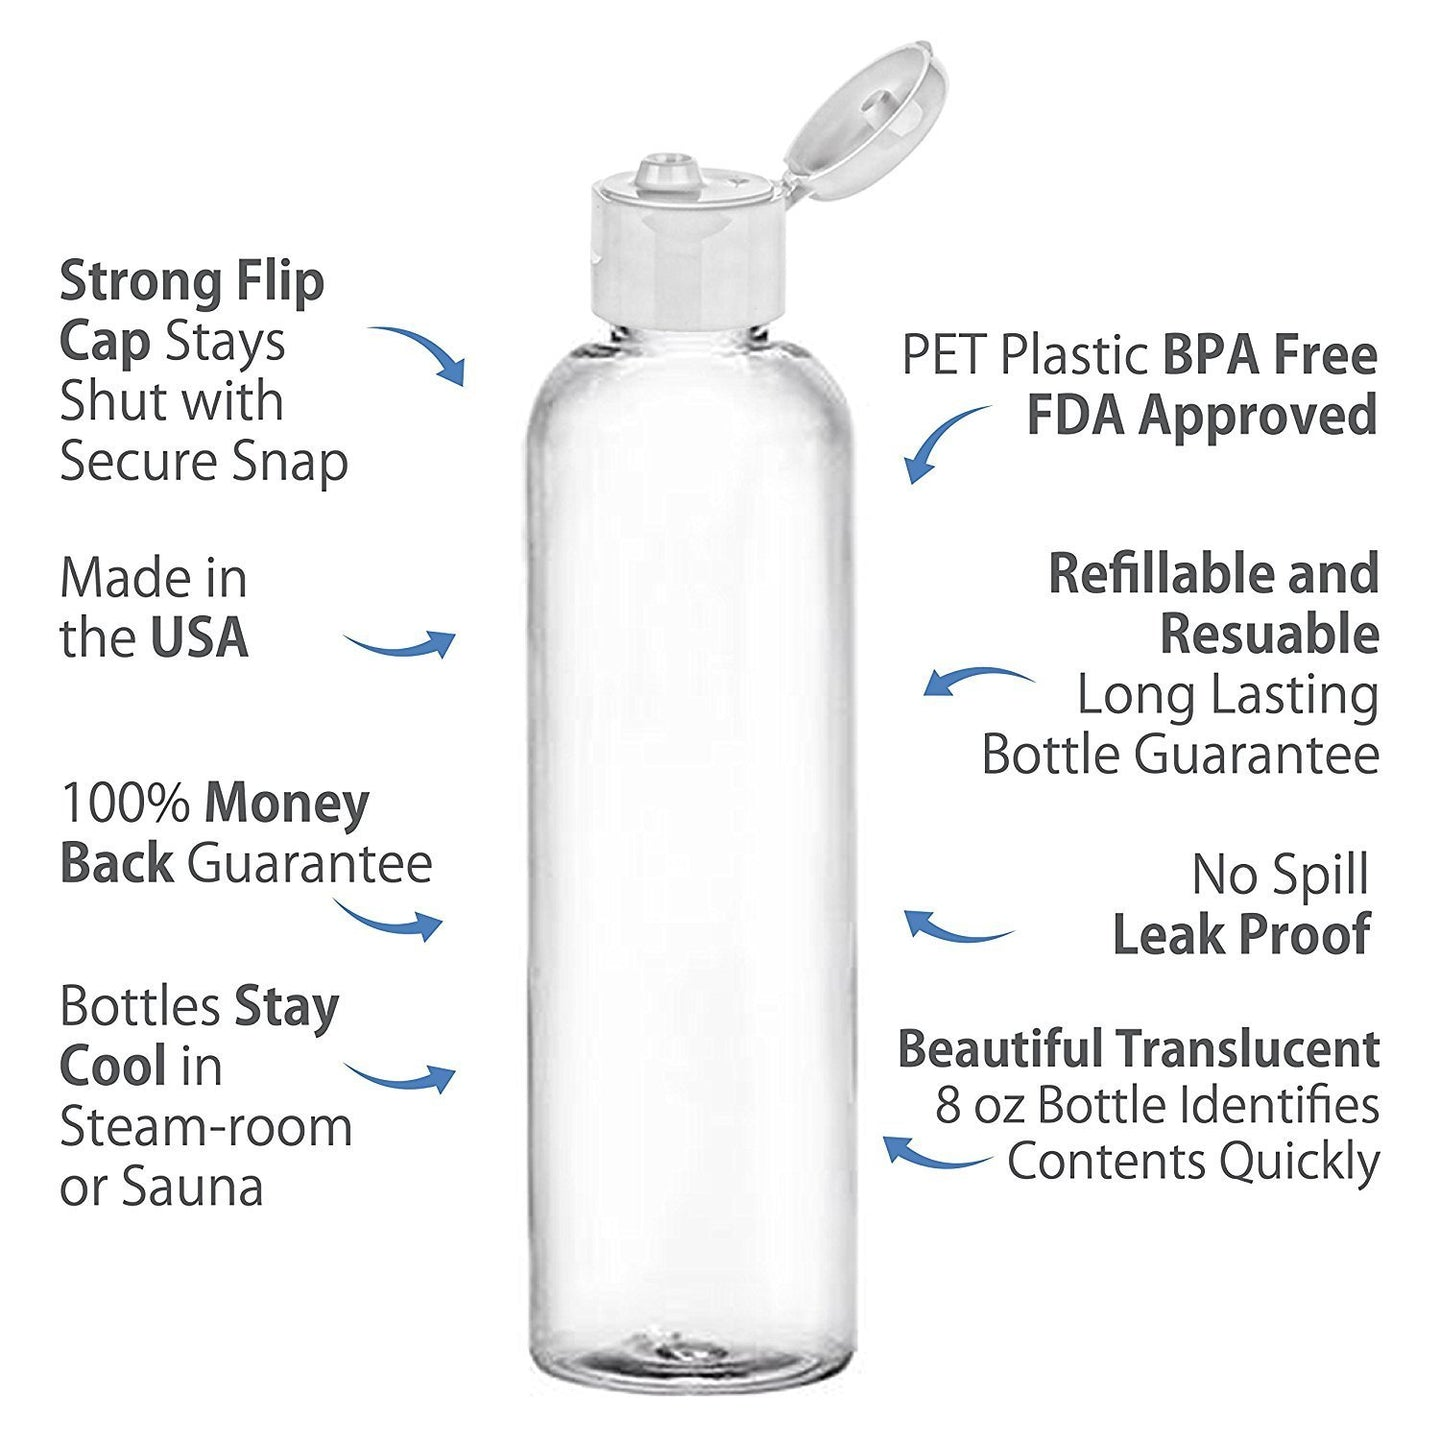 MoYo Natural Labs 4 oz Travel Bottles, Empty Travel Containers with Flip Caps, BPA Free PET Plastic Squeezable Toiletry/Cosmetic Bottles (Neck 20-410) (Pack of 1, Clear)